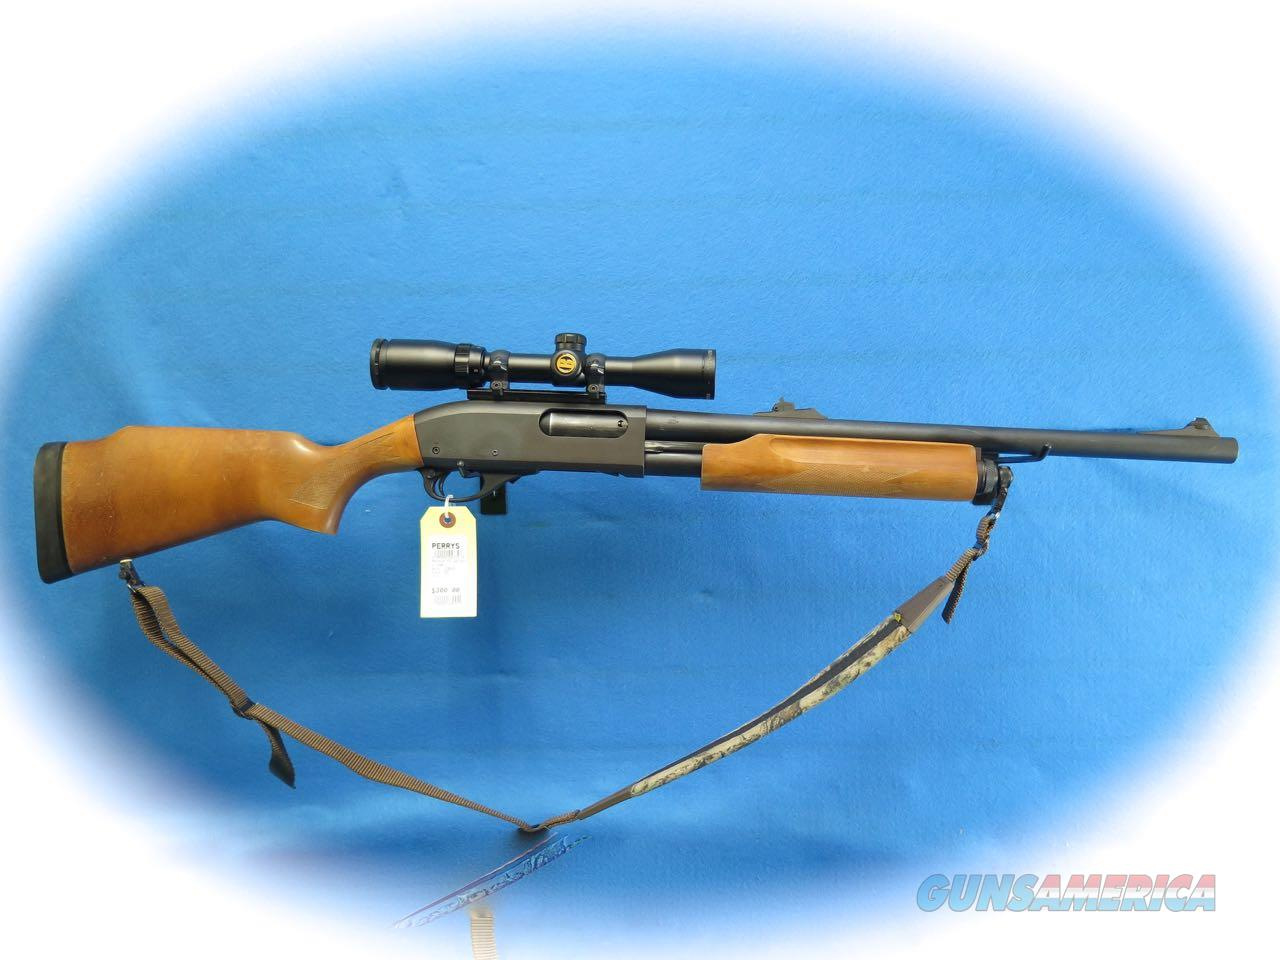 Remington Model 870 Express Magnum 12 Ga. Pump Shotgun  Rifled Slug  BBL **Used**  Guns > Shotguns > Remington Shotguns  > Pump > Hunting